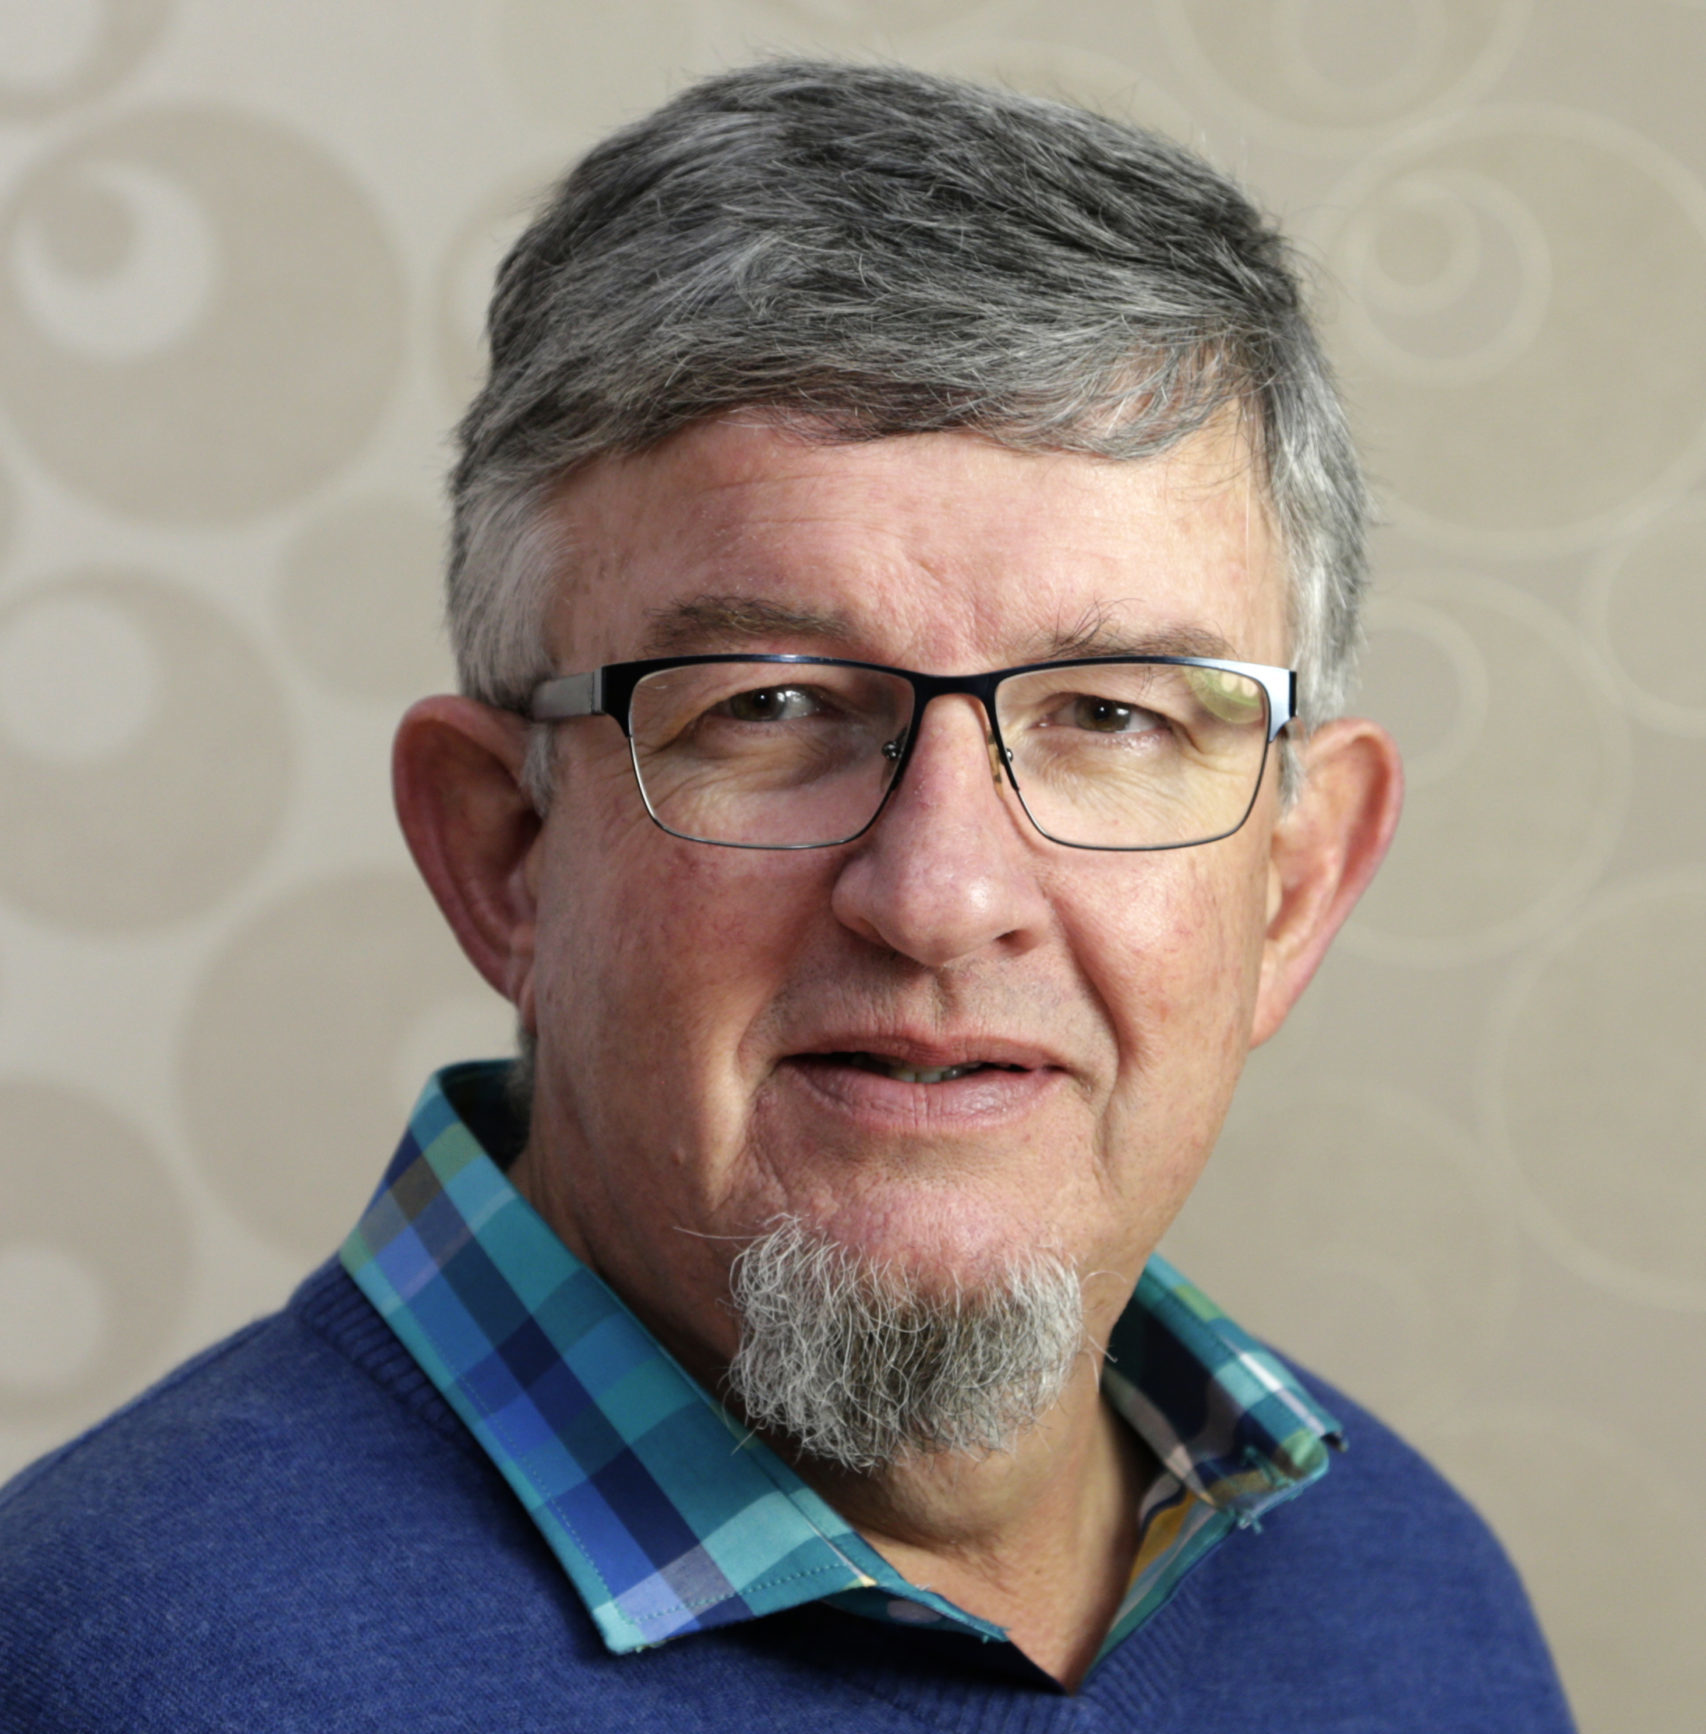 Dr Pieter Prinsloo, a farmer from Queenstown in the Eastern Cape received an honorary award from Agri SA. Photo: Supplied